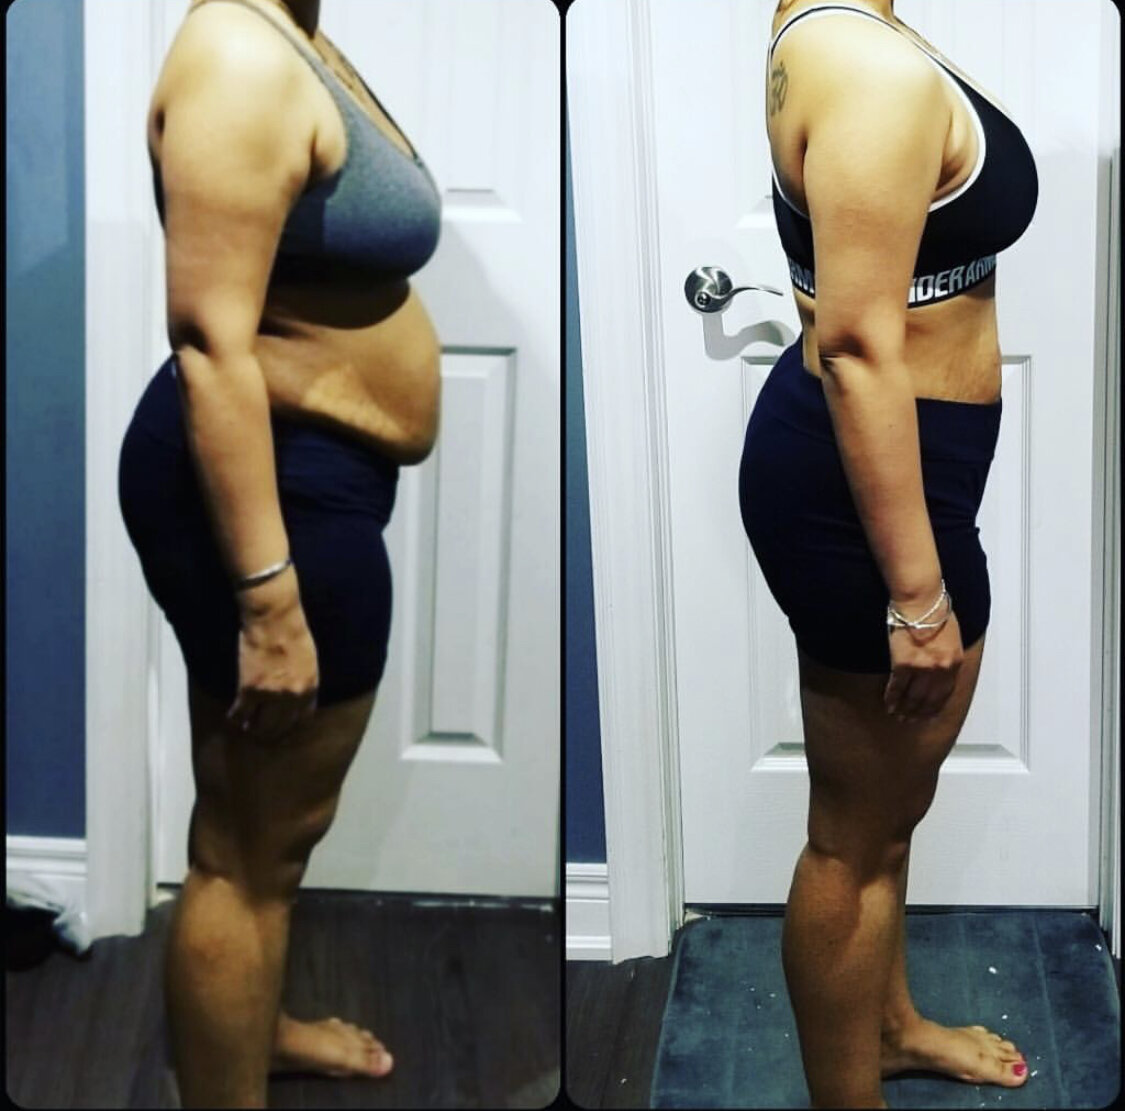 Sound nutrional advice + the best indoor cycling/boot camp classes = amazing results! -